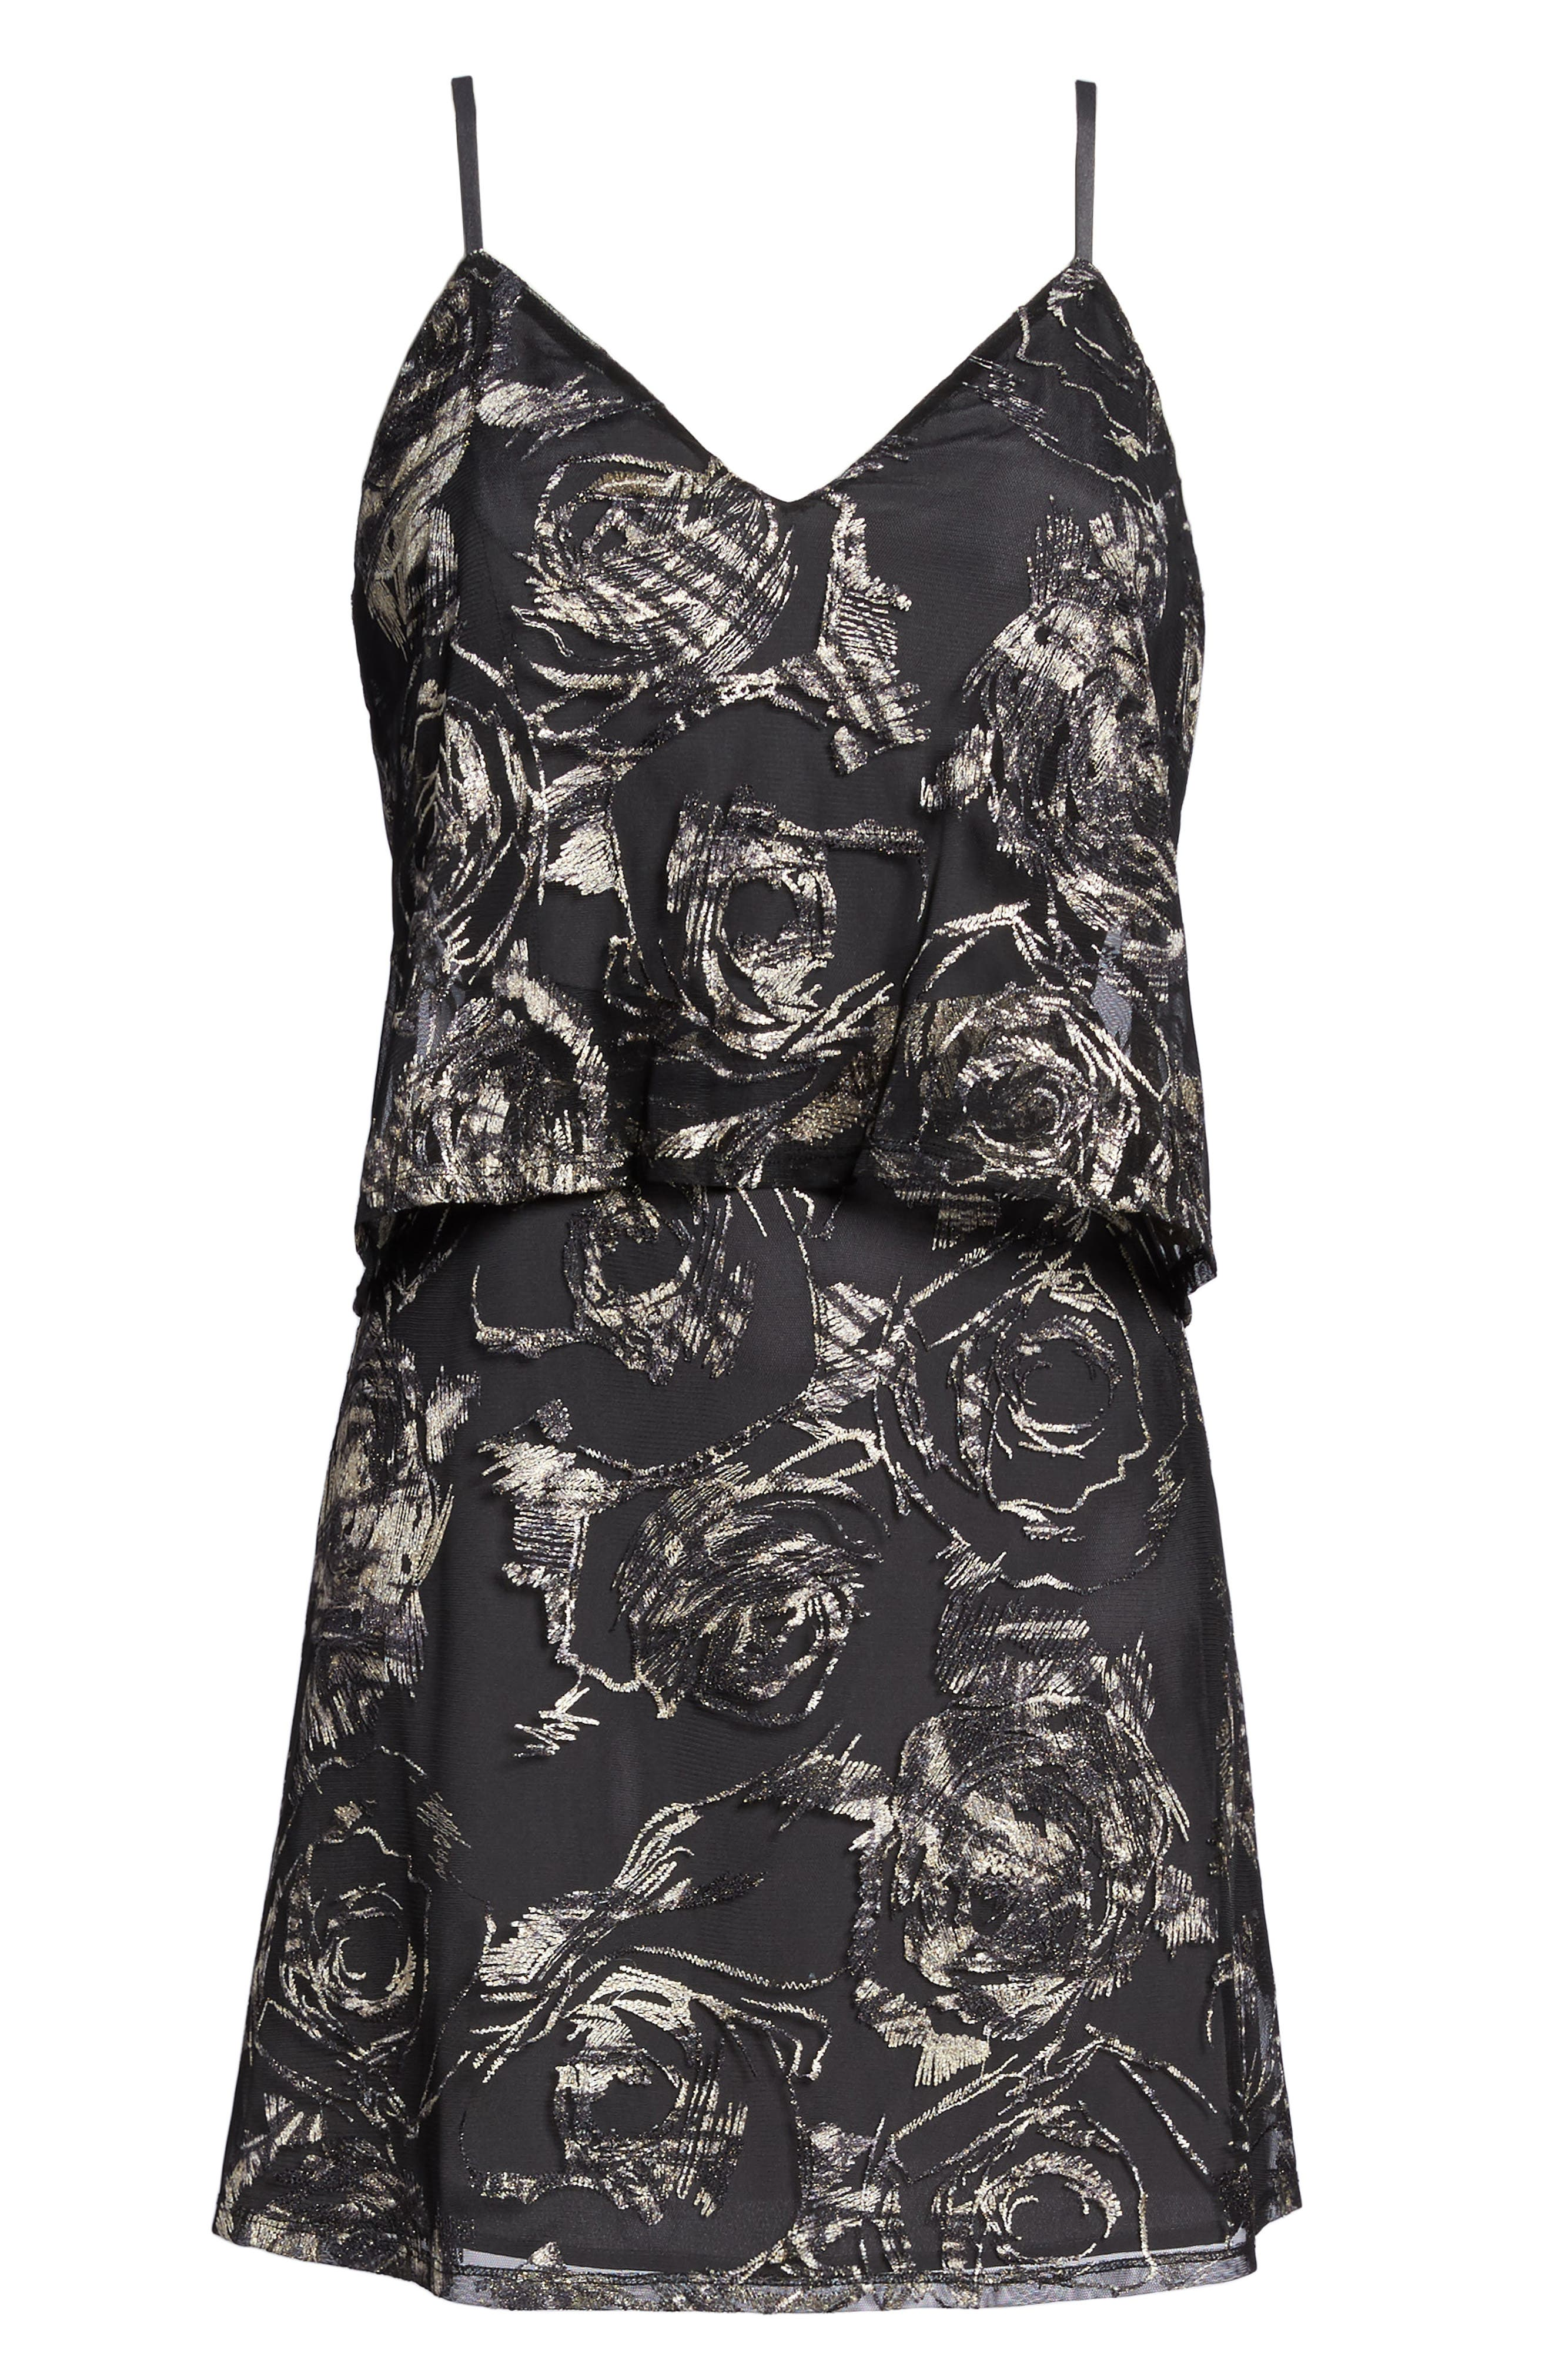 Inoubliable Minidress,                             Alternate thumbnail 7, color,                             Moody Embroidery